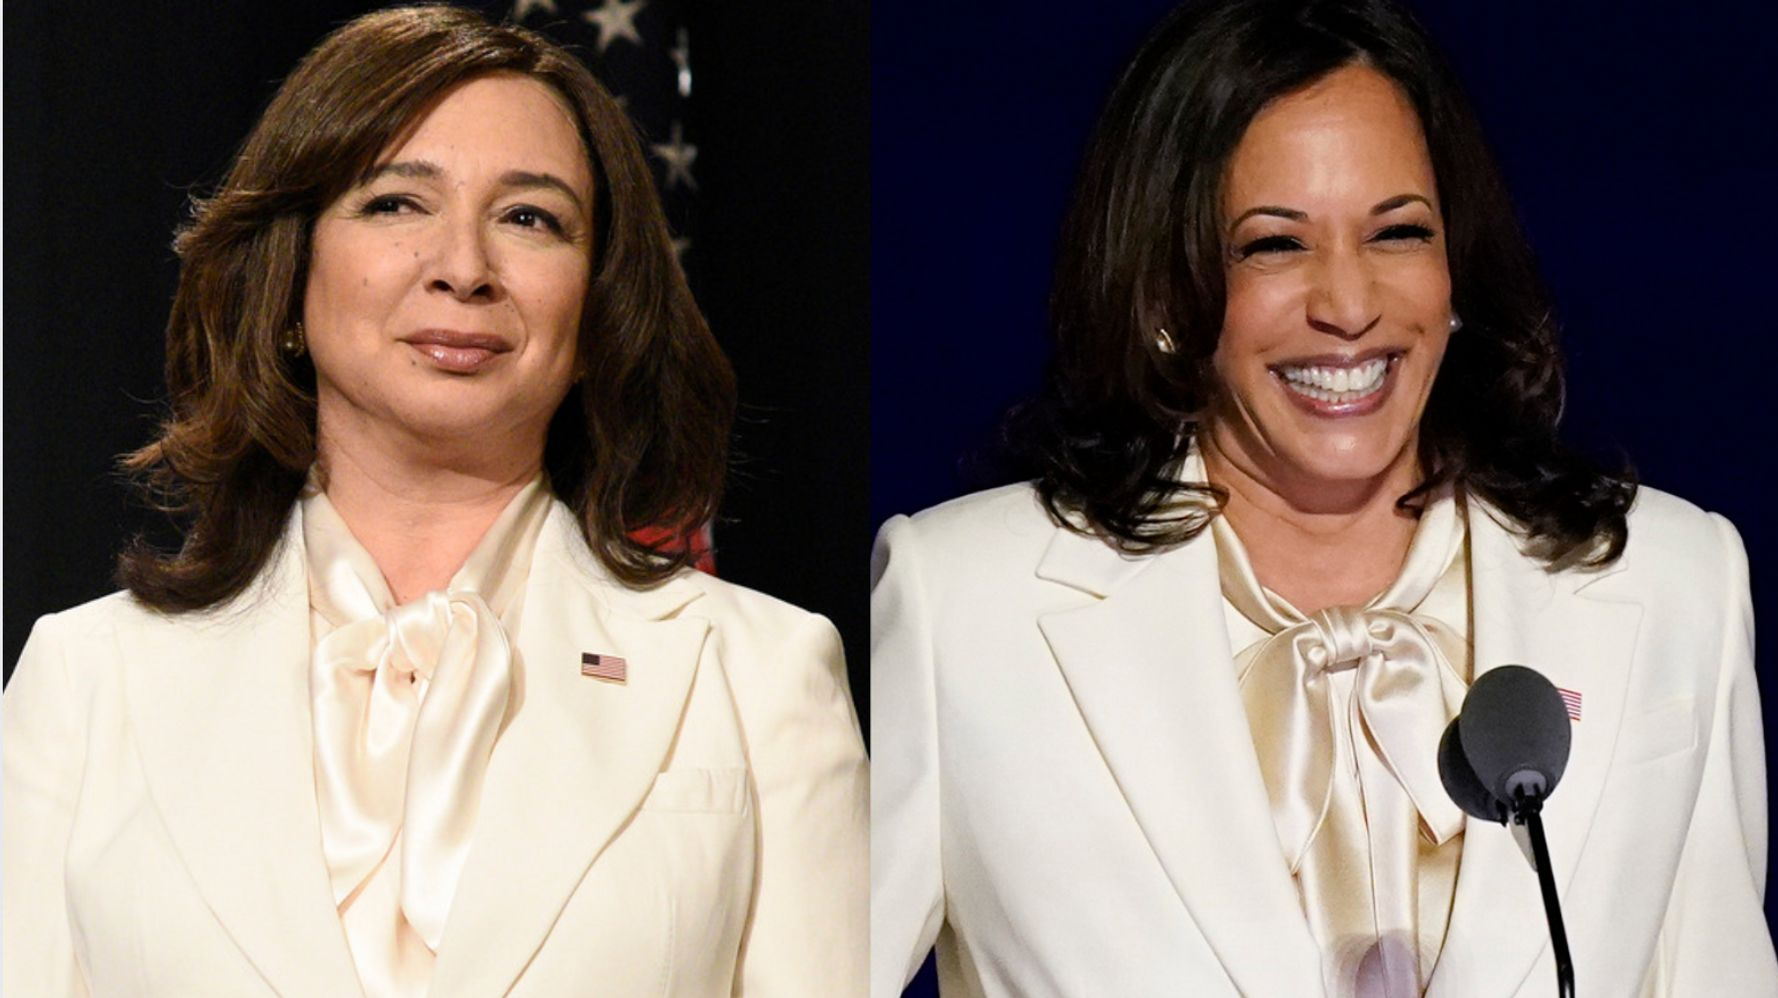 How 'SNL' Pulled Off Re-creating Kamala Harris' Pantsuit With A Melania Twist